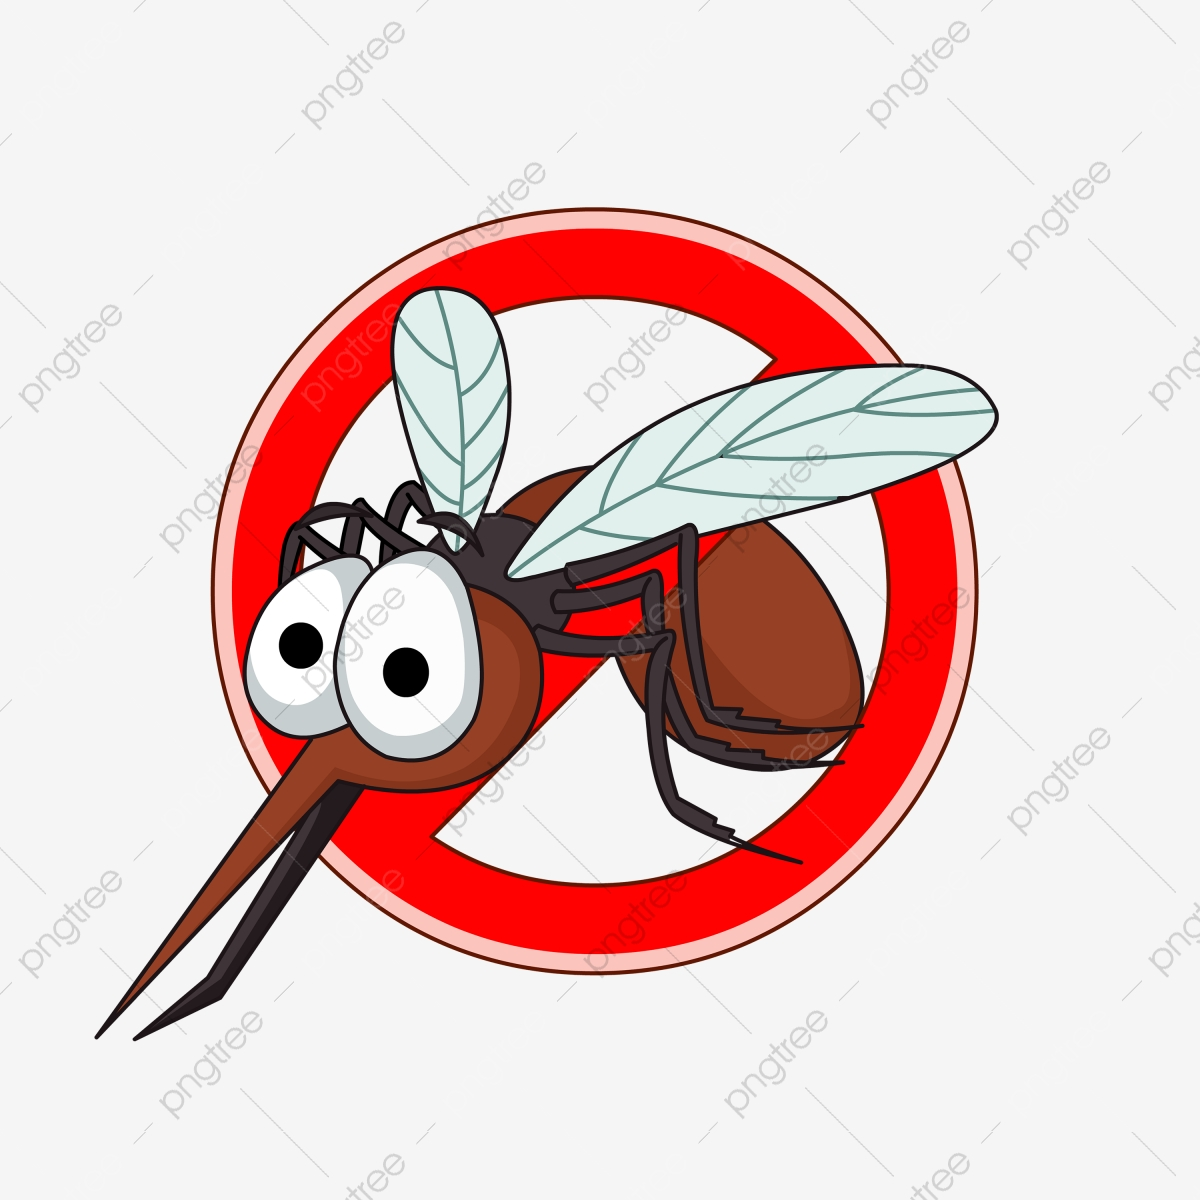 Mosquito repeller icon. Vector illustration of mosquito repellent cream  isolated on white background, in flat style. plastic